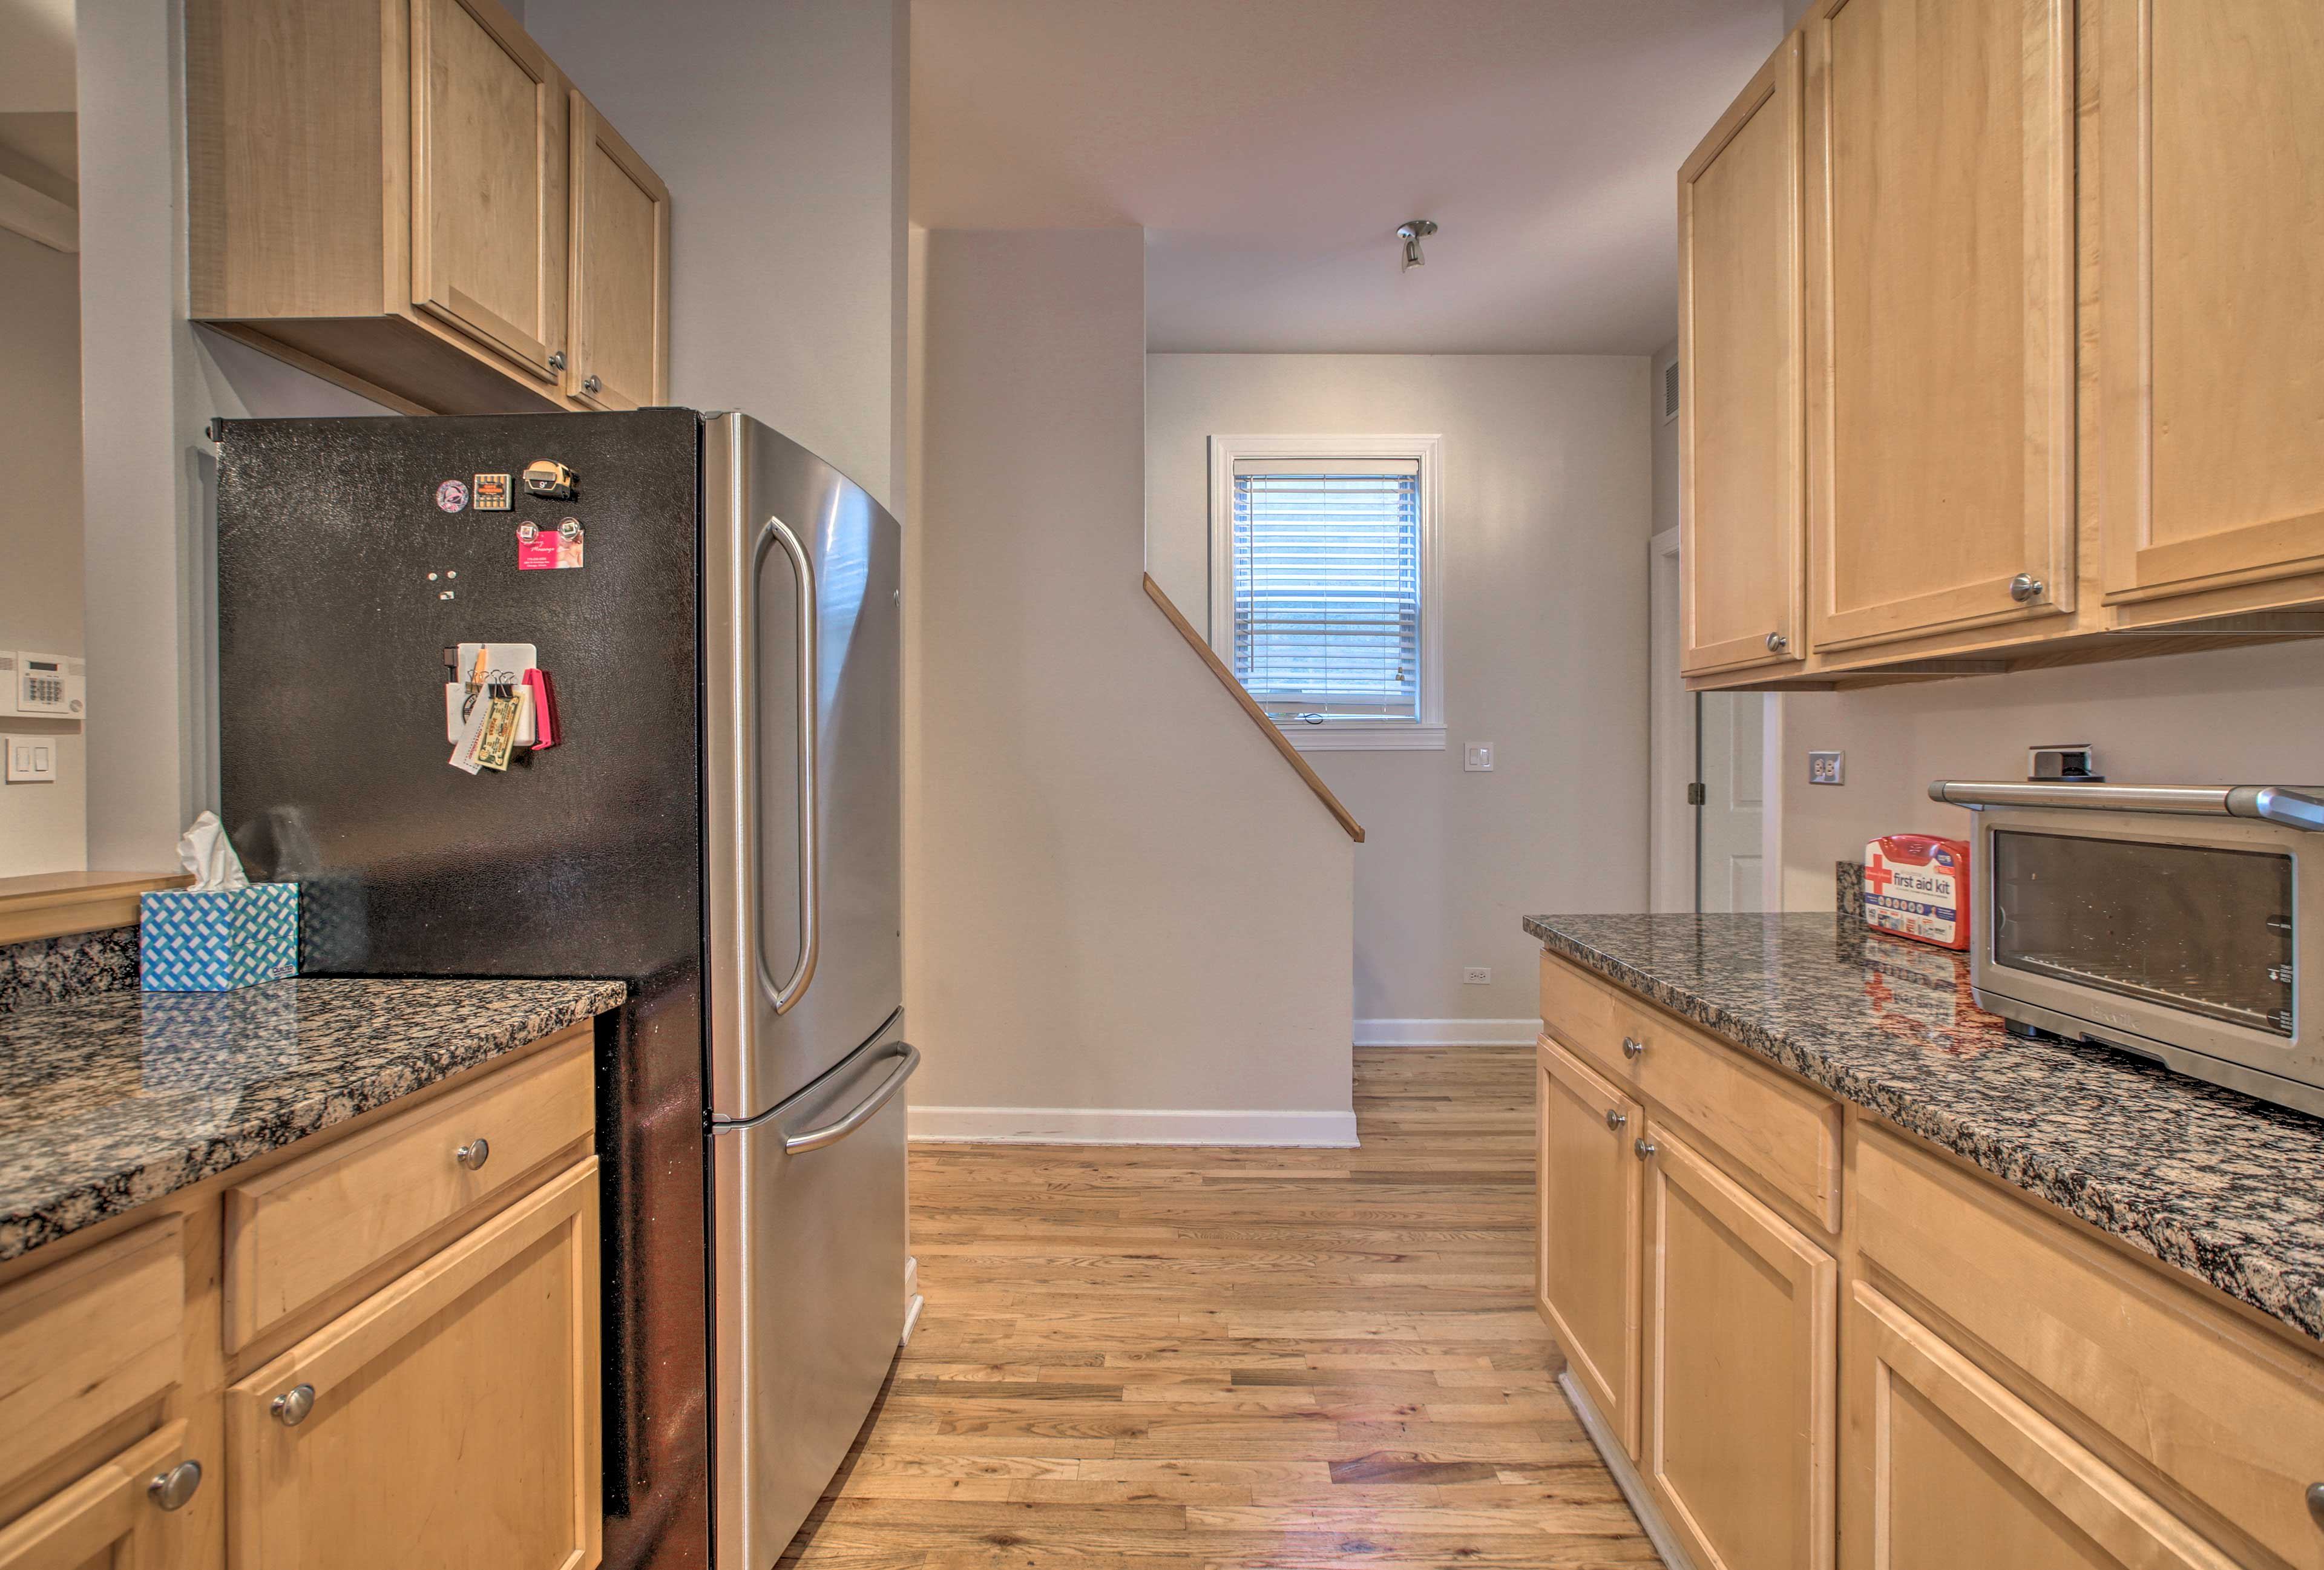 Stainless steel appliances & granite countertops elevate the space.